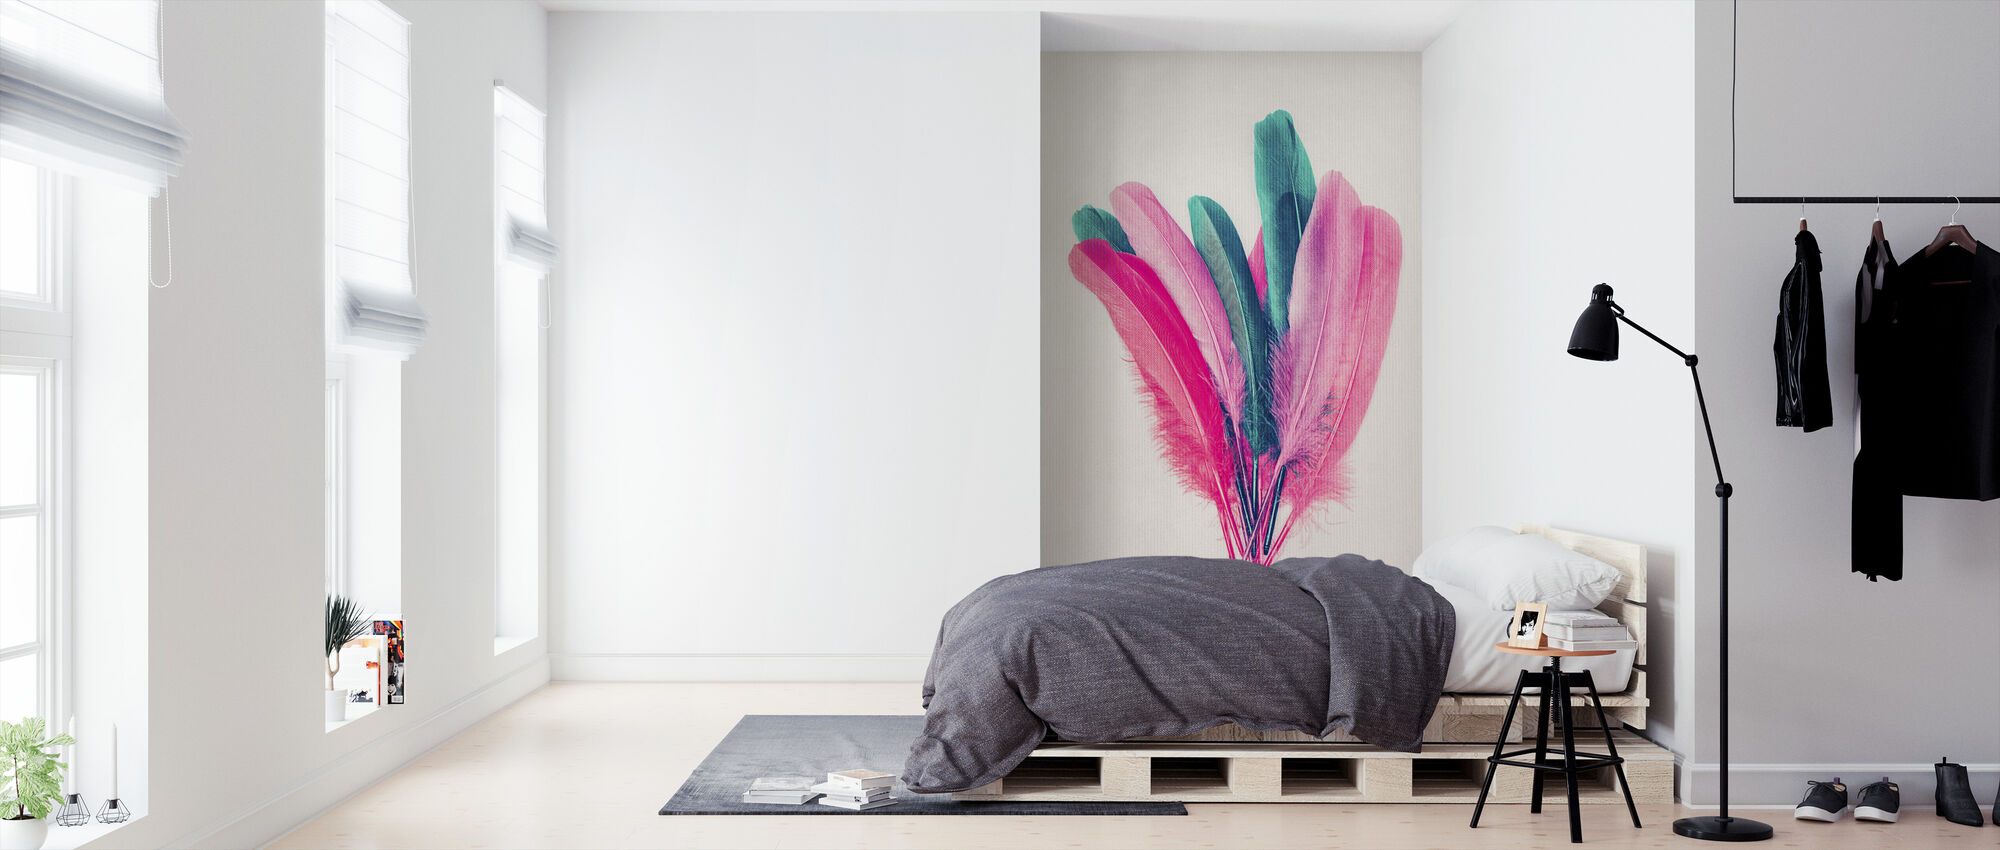 Feather Bouquet - Wallpaper - Bedroom